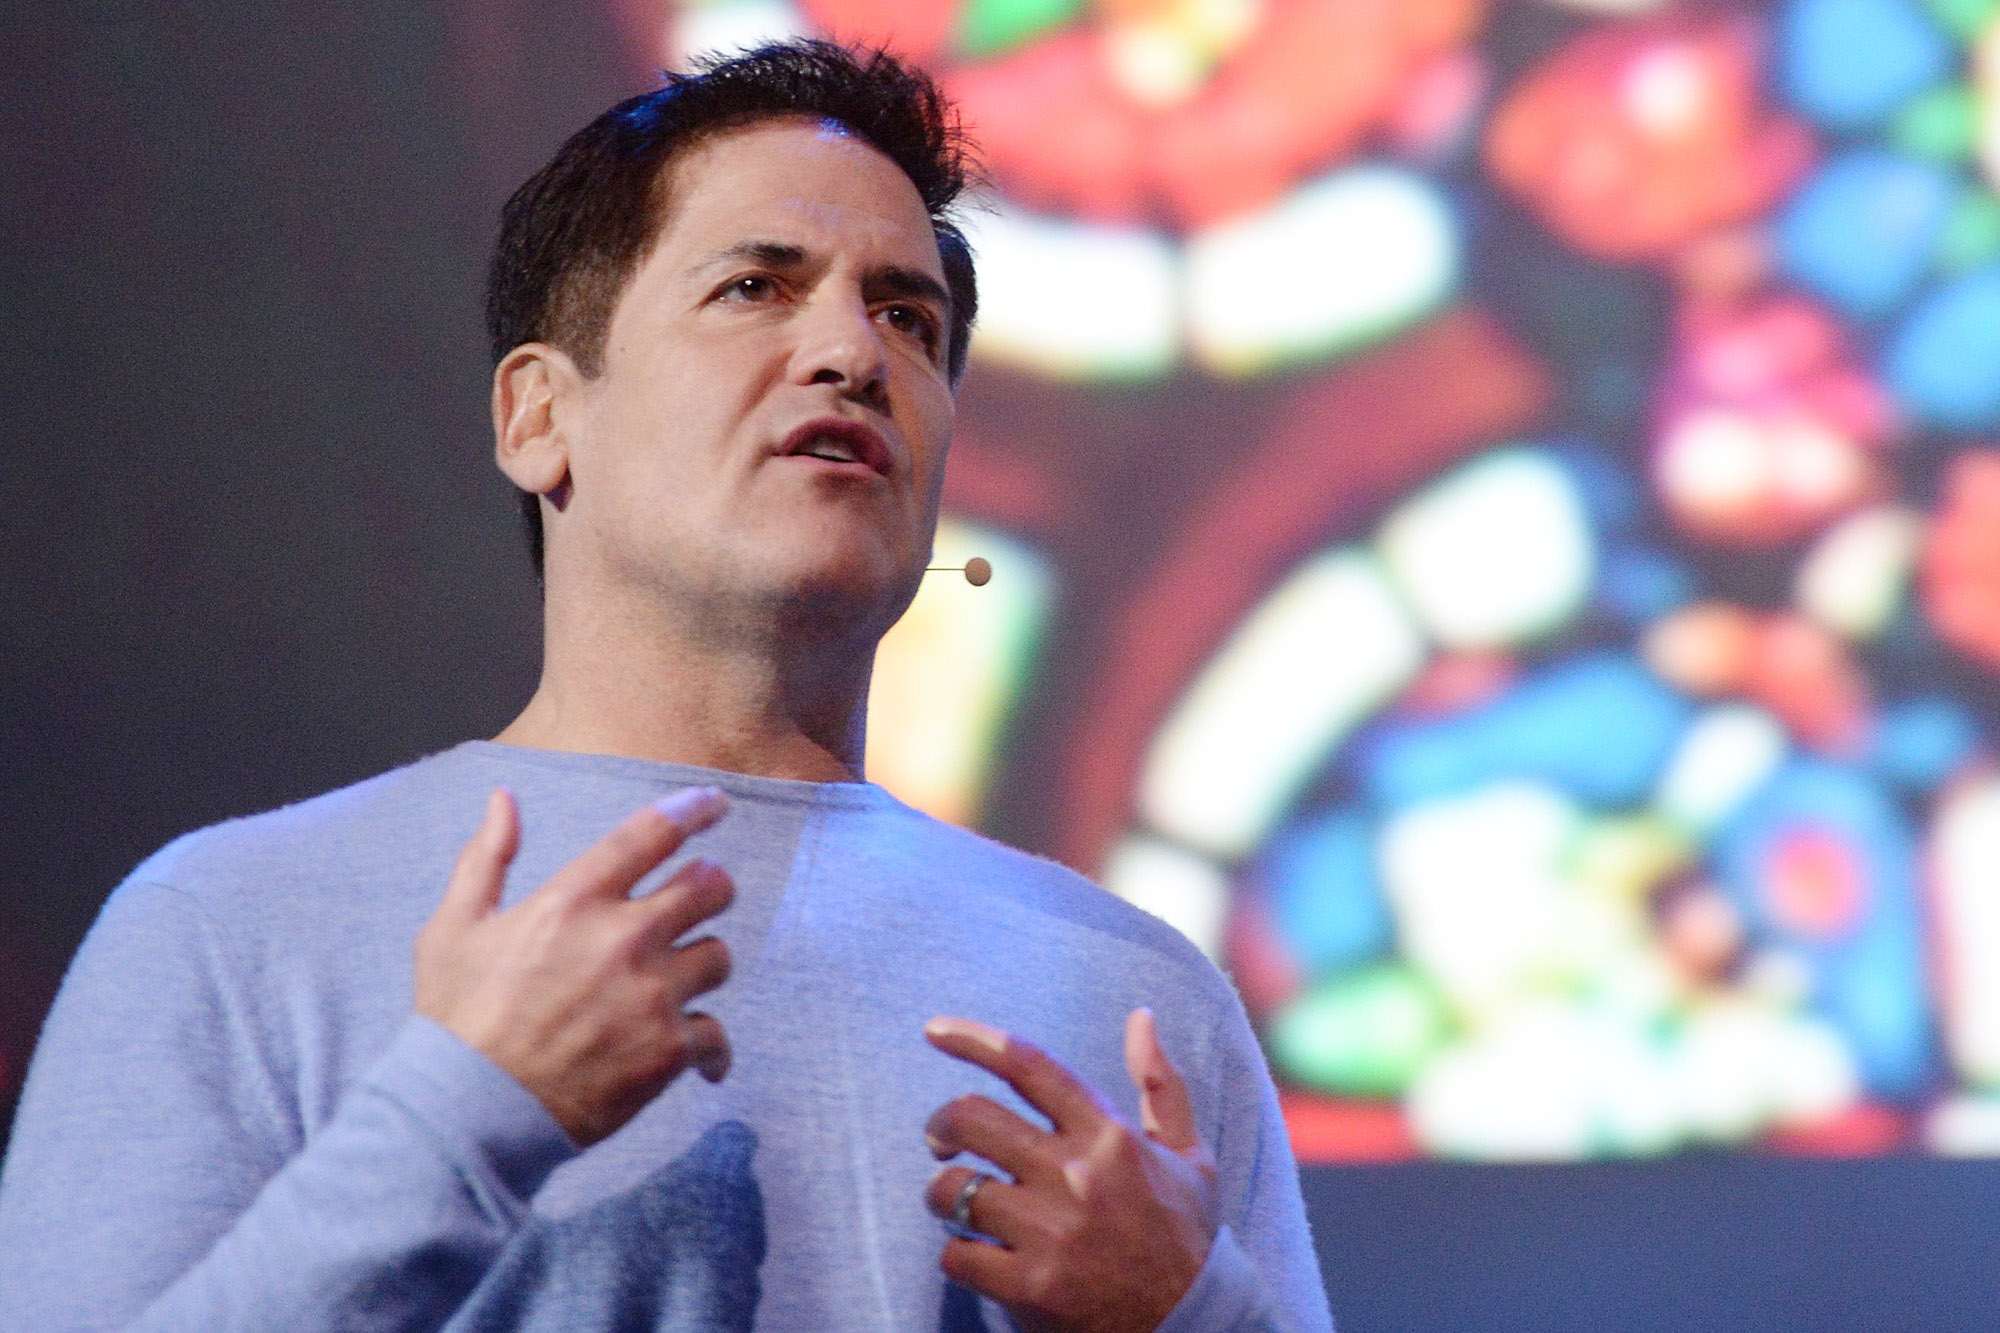 Entrepreneur and Dallas Mavericks owner Mark Cuban speaks at one of Samsung's CES 2014 press events. Photo: Getty Images